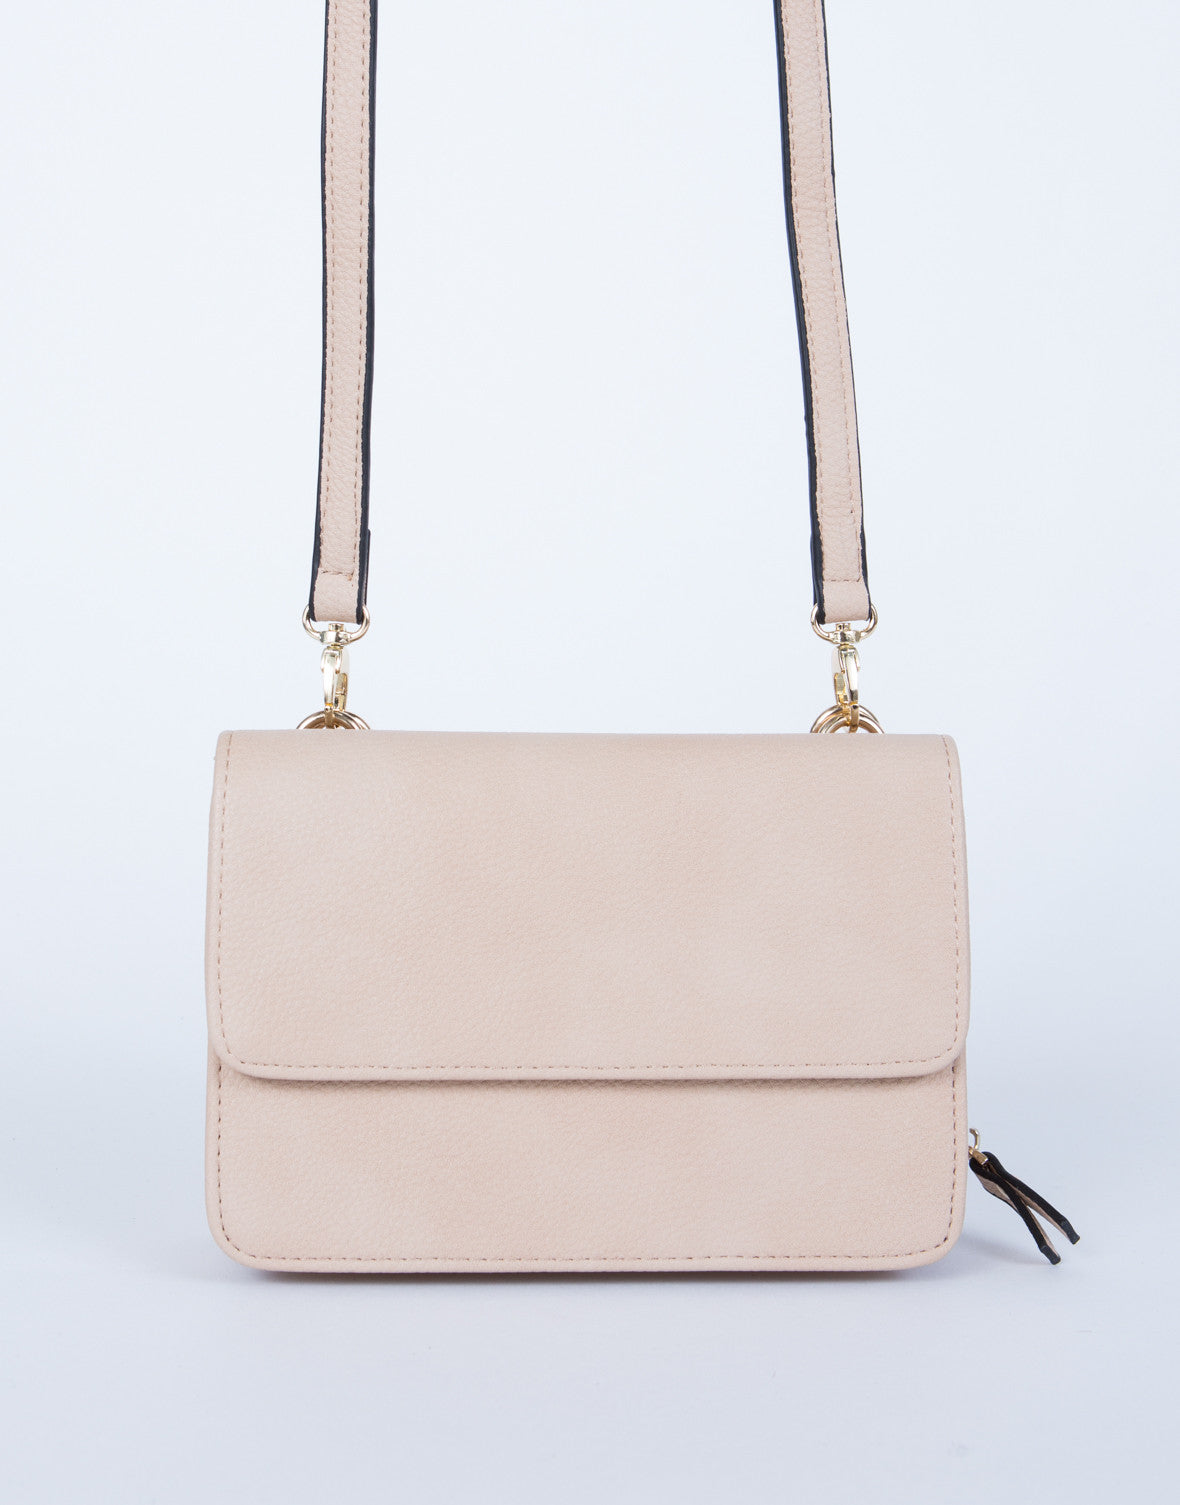 Day to Day Crossbody Bag